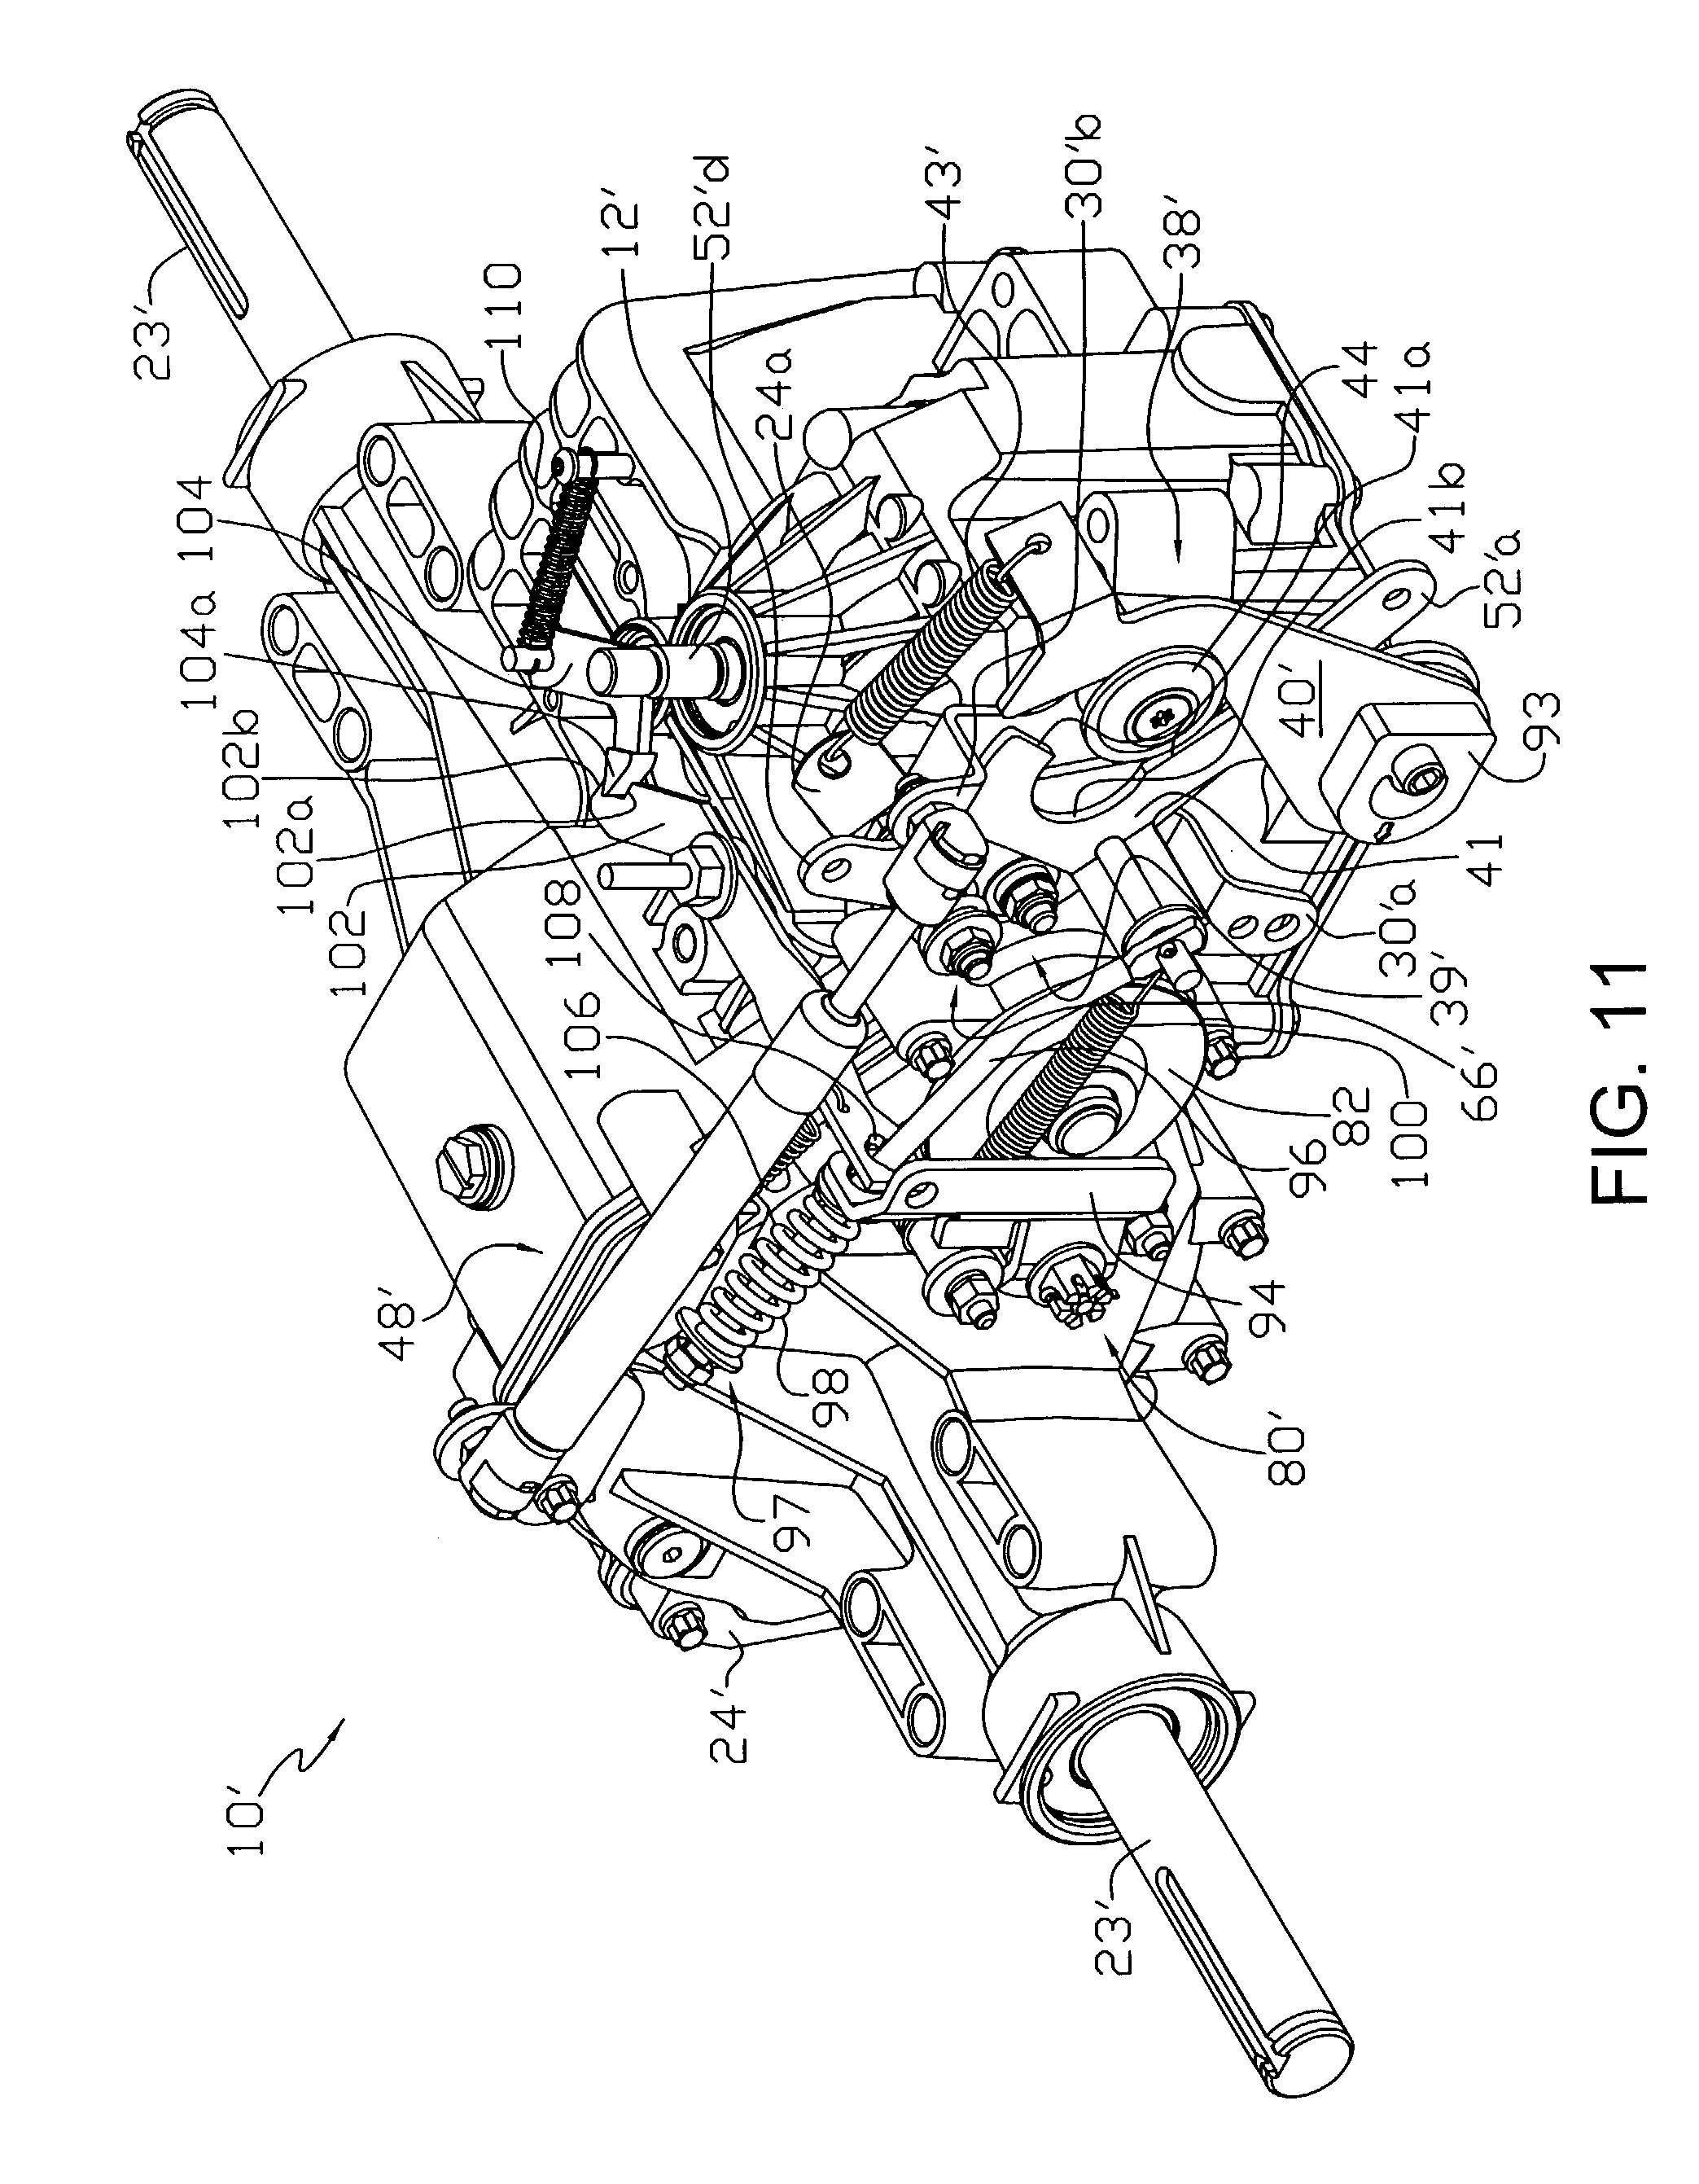 patent us20040099457 - cruise control system